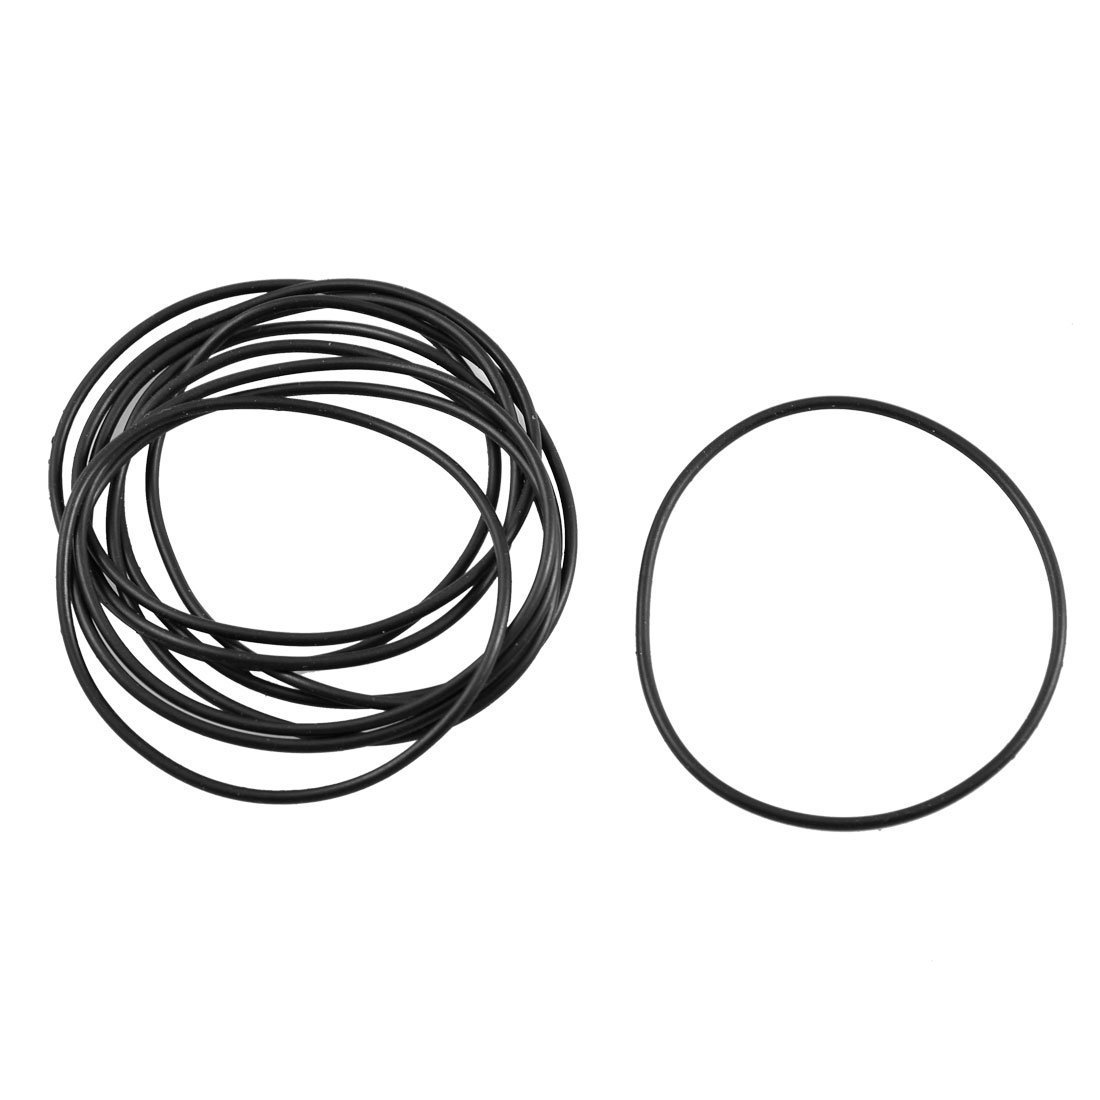 sourcingmap® 10 Pcs Black Rubber Oil Filter Seal O Ring Gaskets 50mm x 47mm x 1.5mm a12100800ux1045